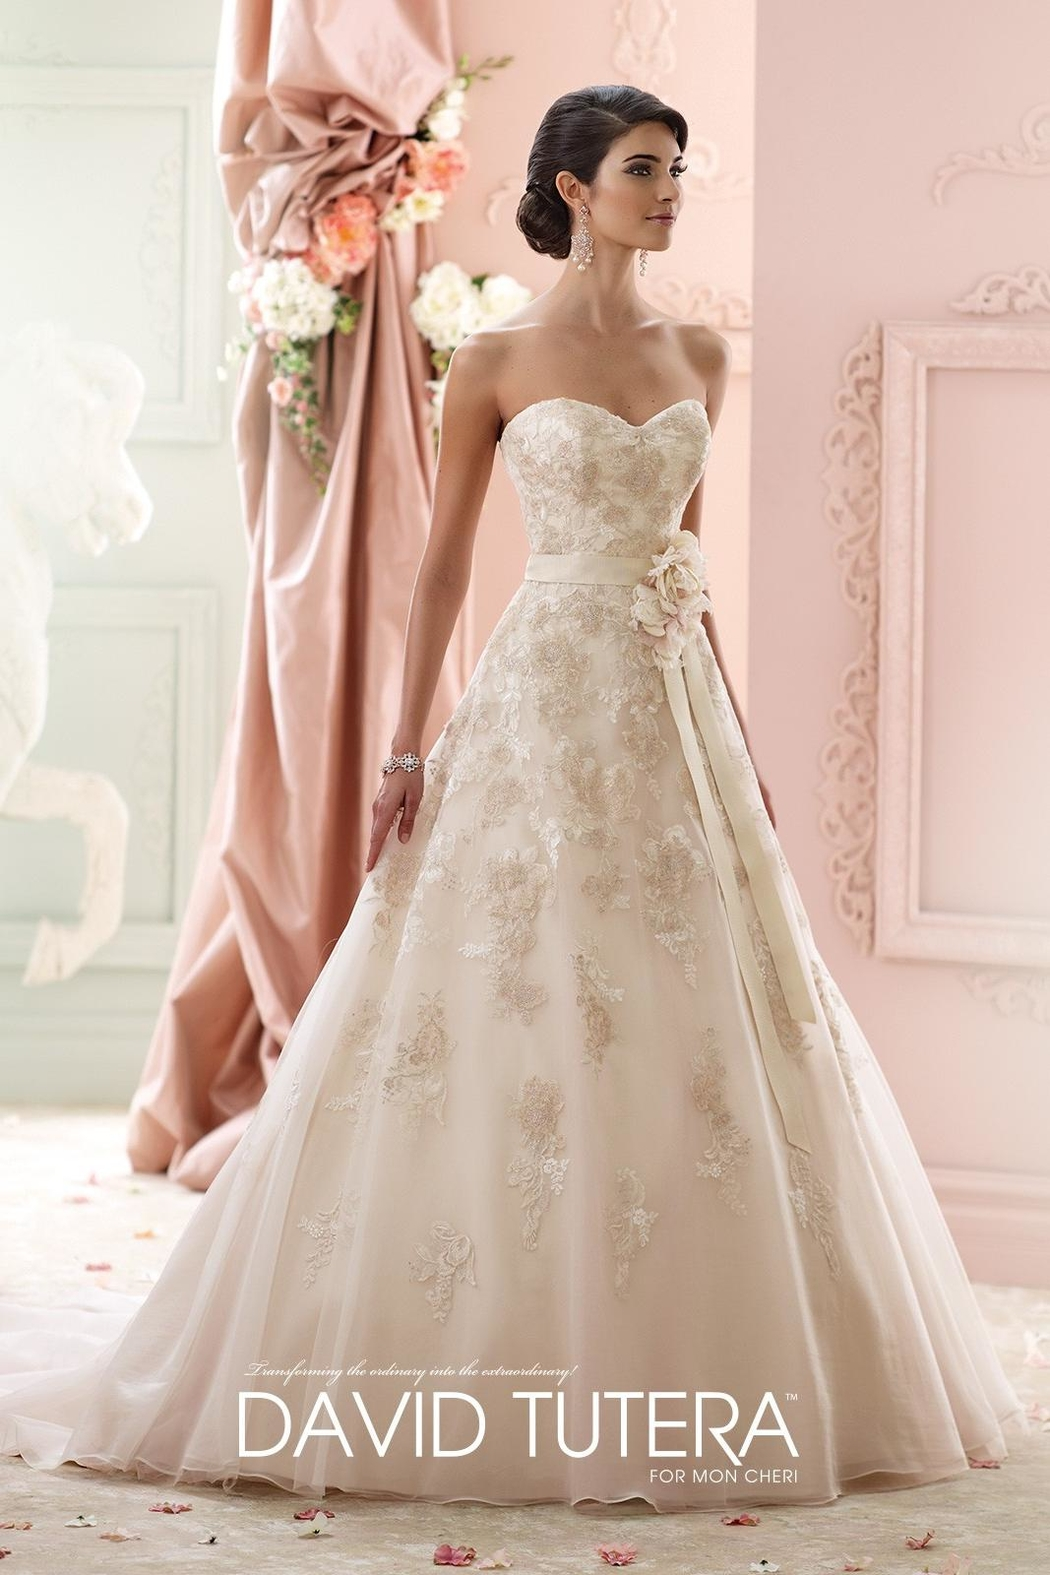 David Tutera for Mon Cheri Organza Ballgown from Ohio by Jillian\'s ...